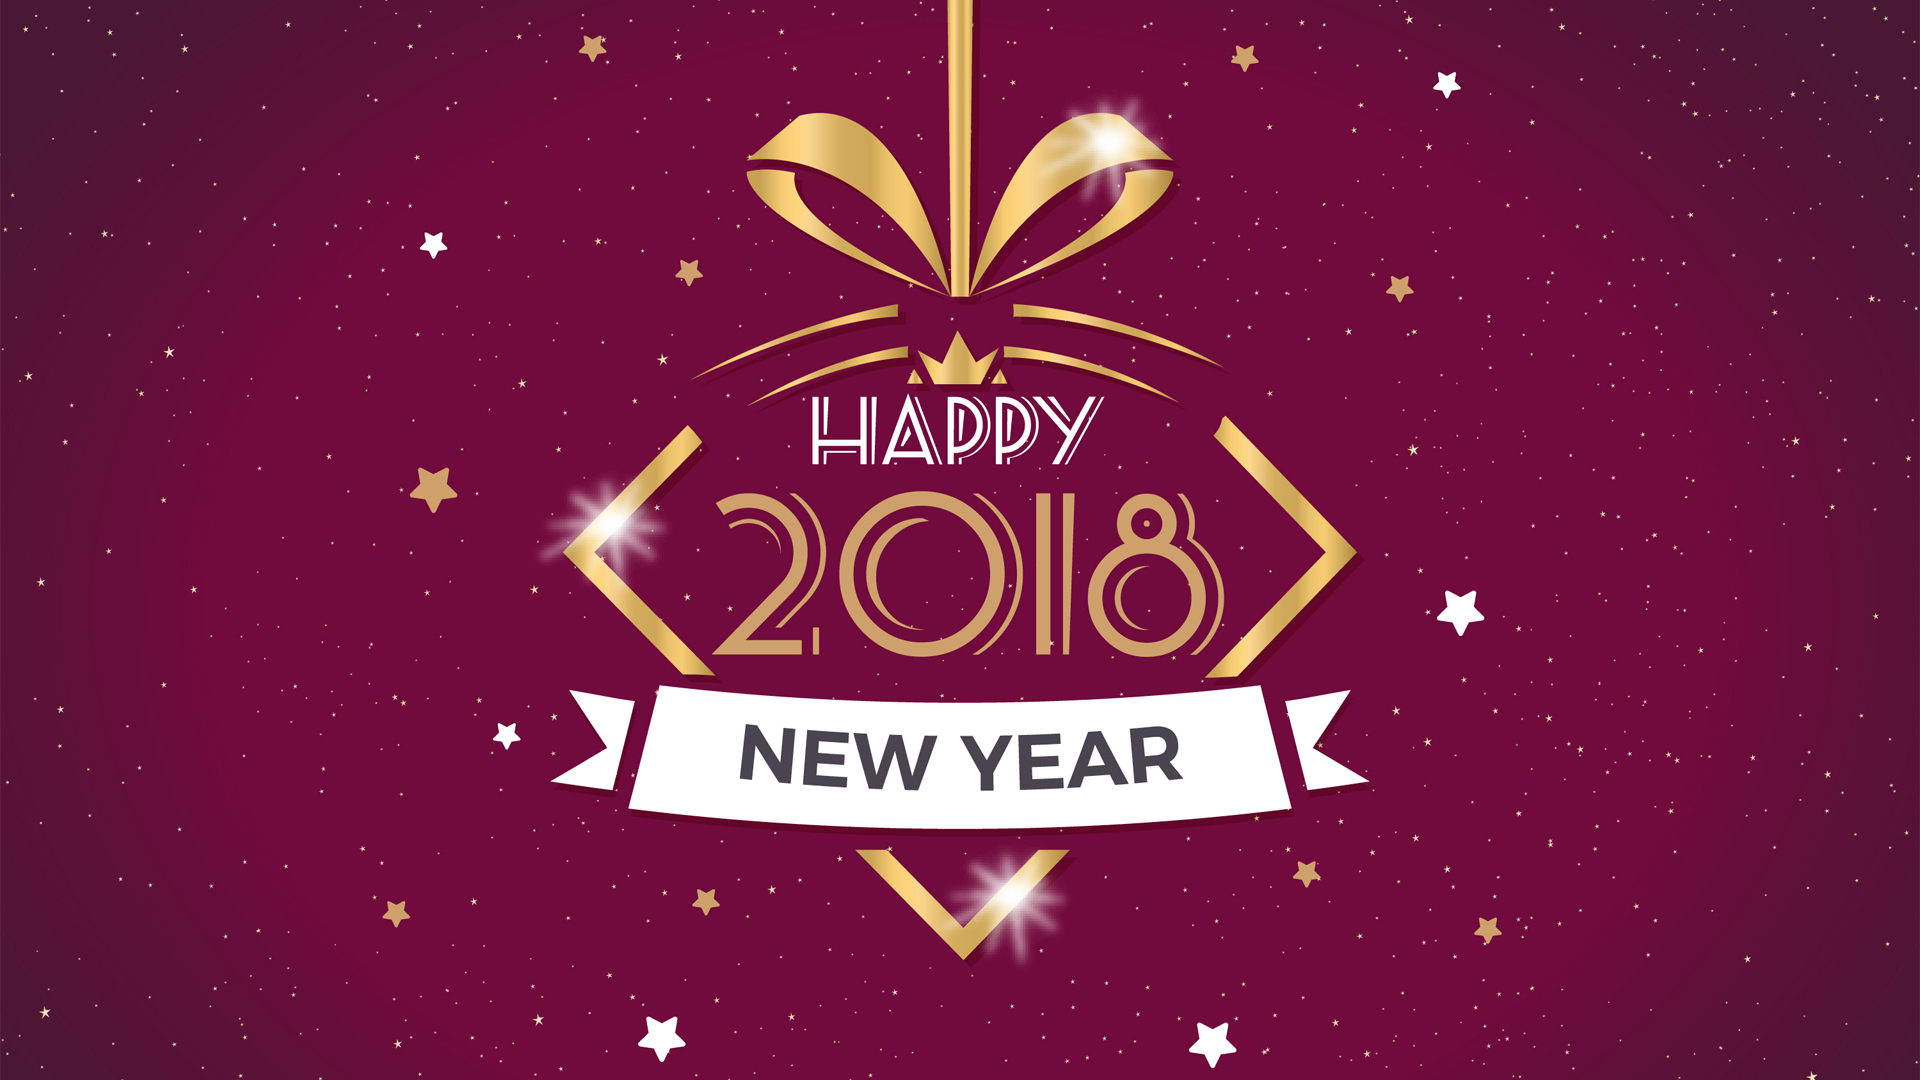 new year wallpapers | free download hd holidays and festivals images